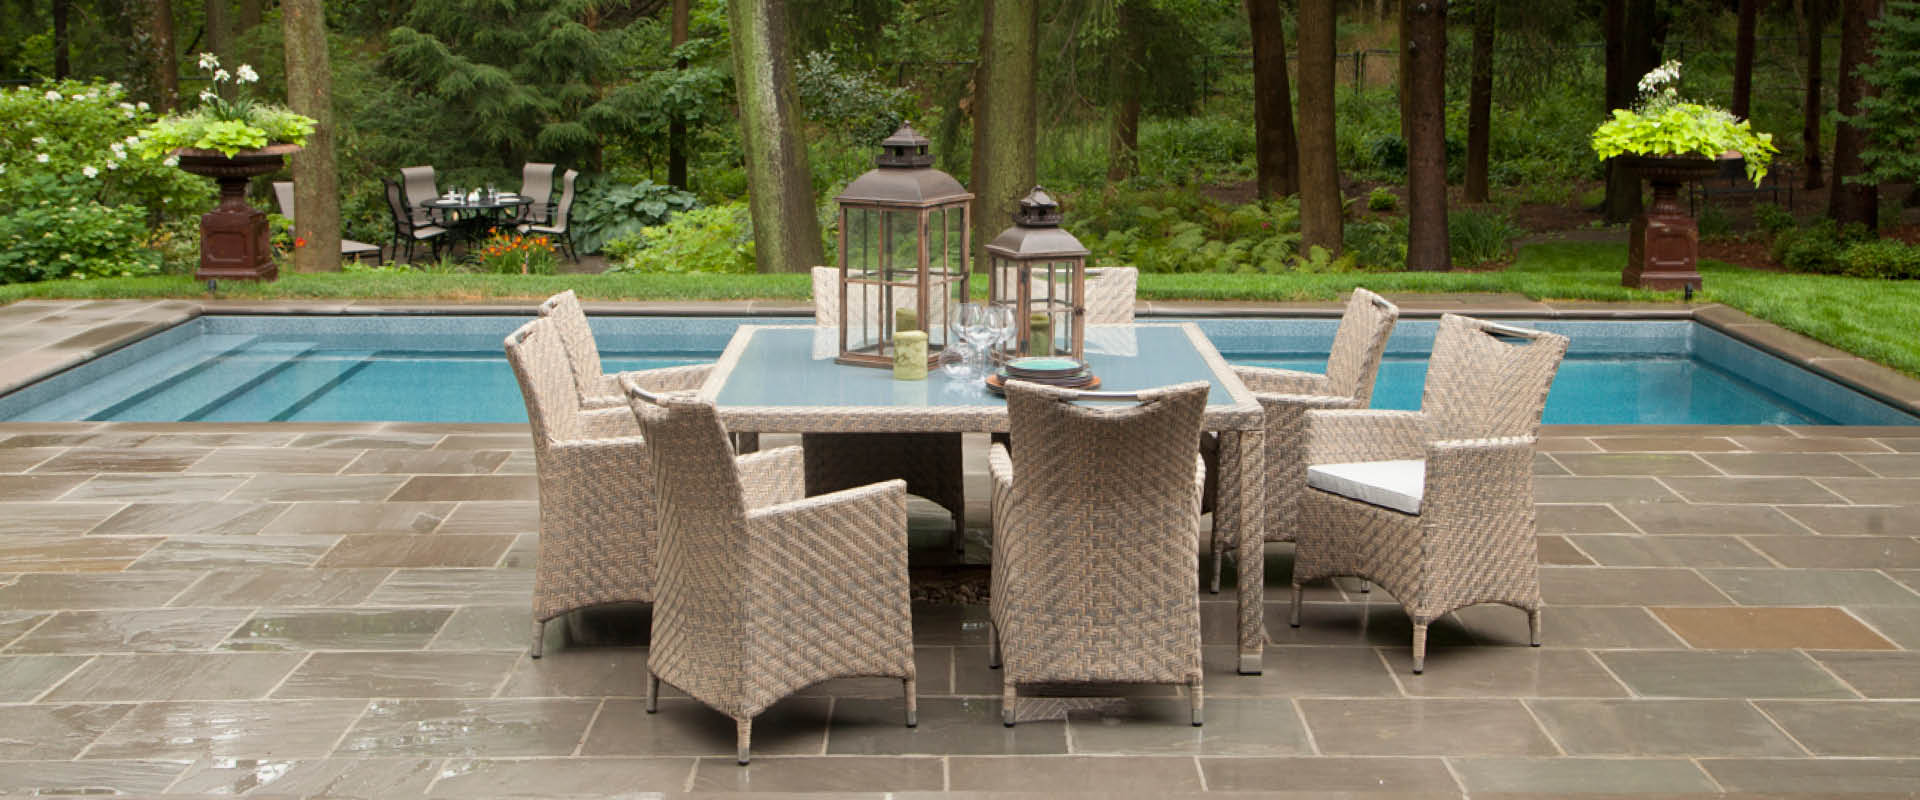 Patio Furniture - What Are the Best Patio Furniture Materials For You?